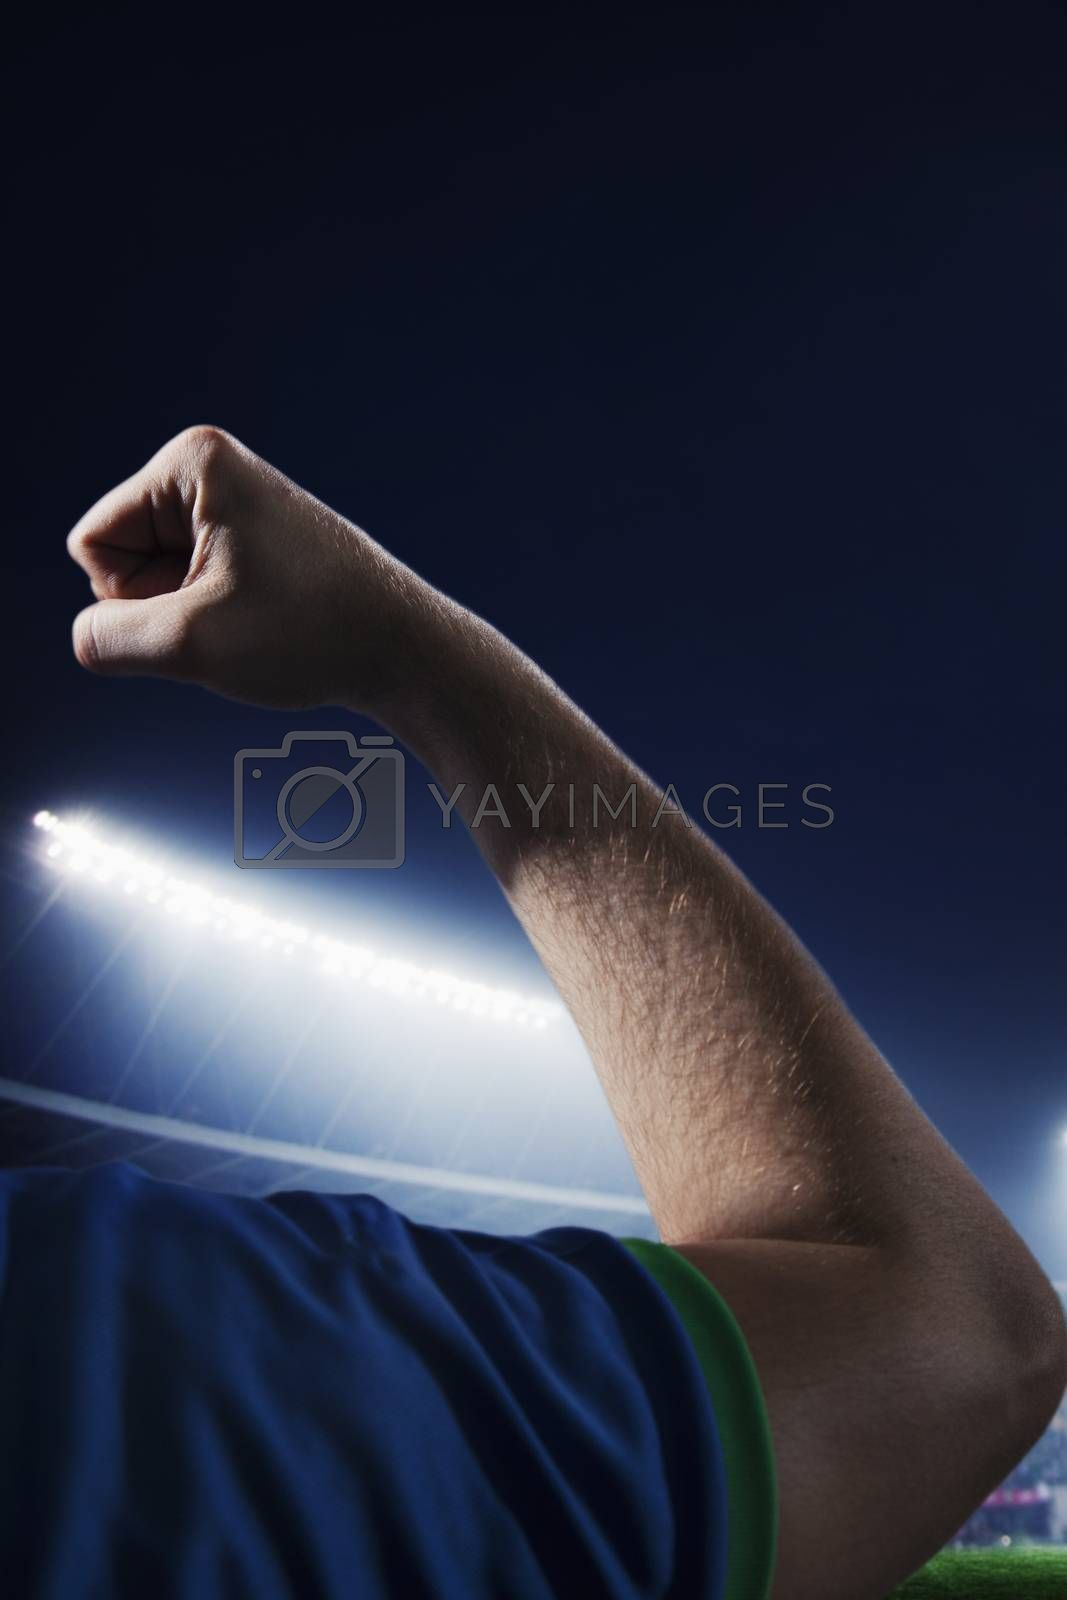 Soccer player flexing bicep in a stadium at night time